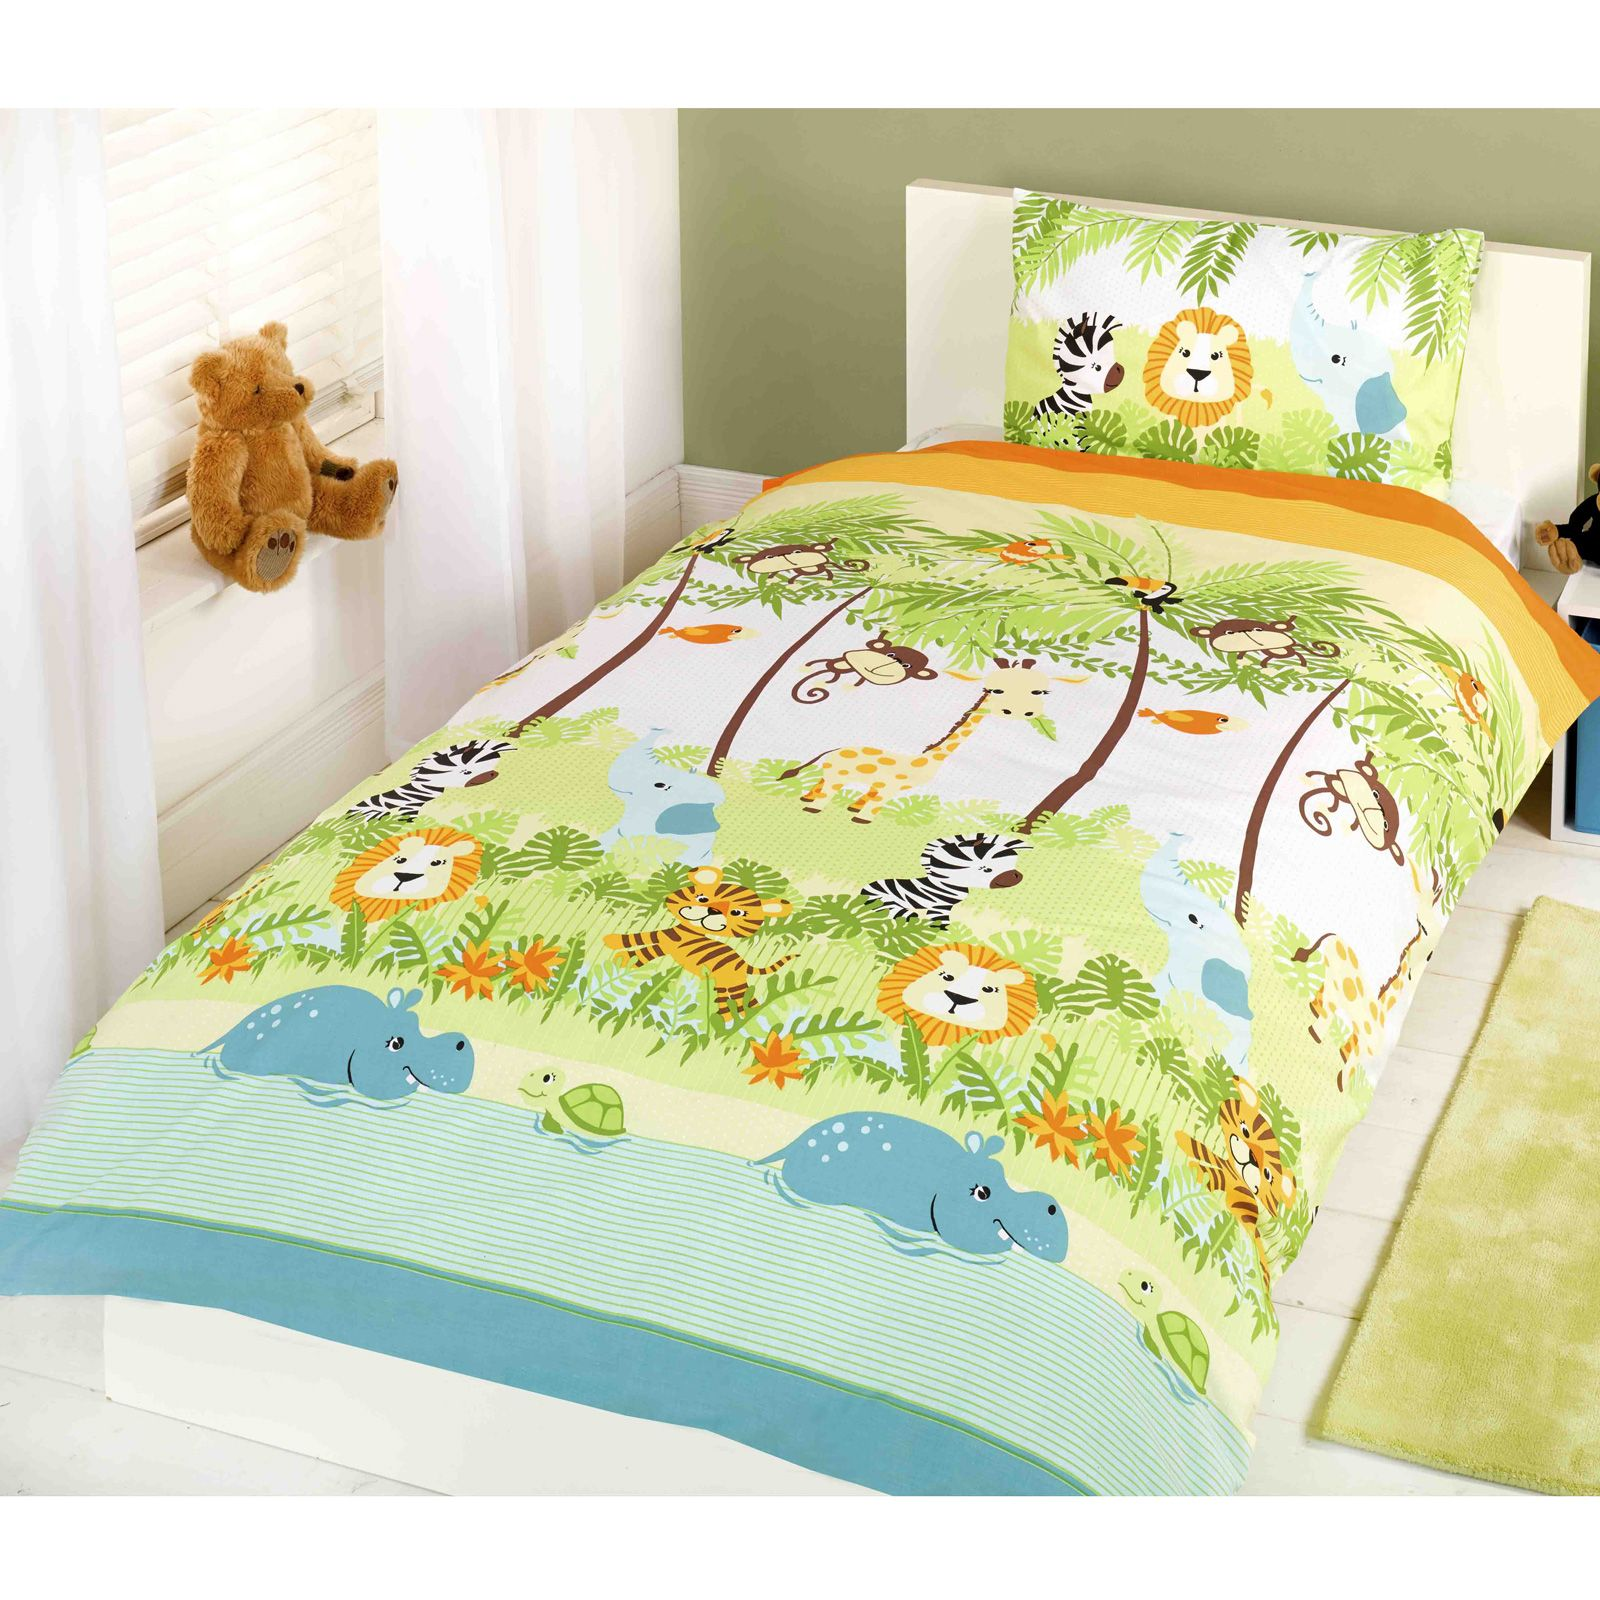 personaggio disney lettino per bambini copripiumini biancheria da letto sofia ebay. Black Bedroom Furniture Sets. Home Design Ideas